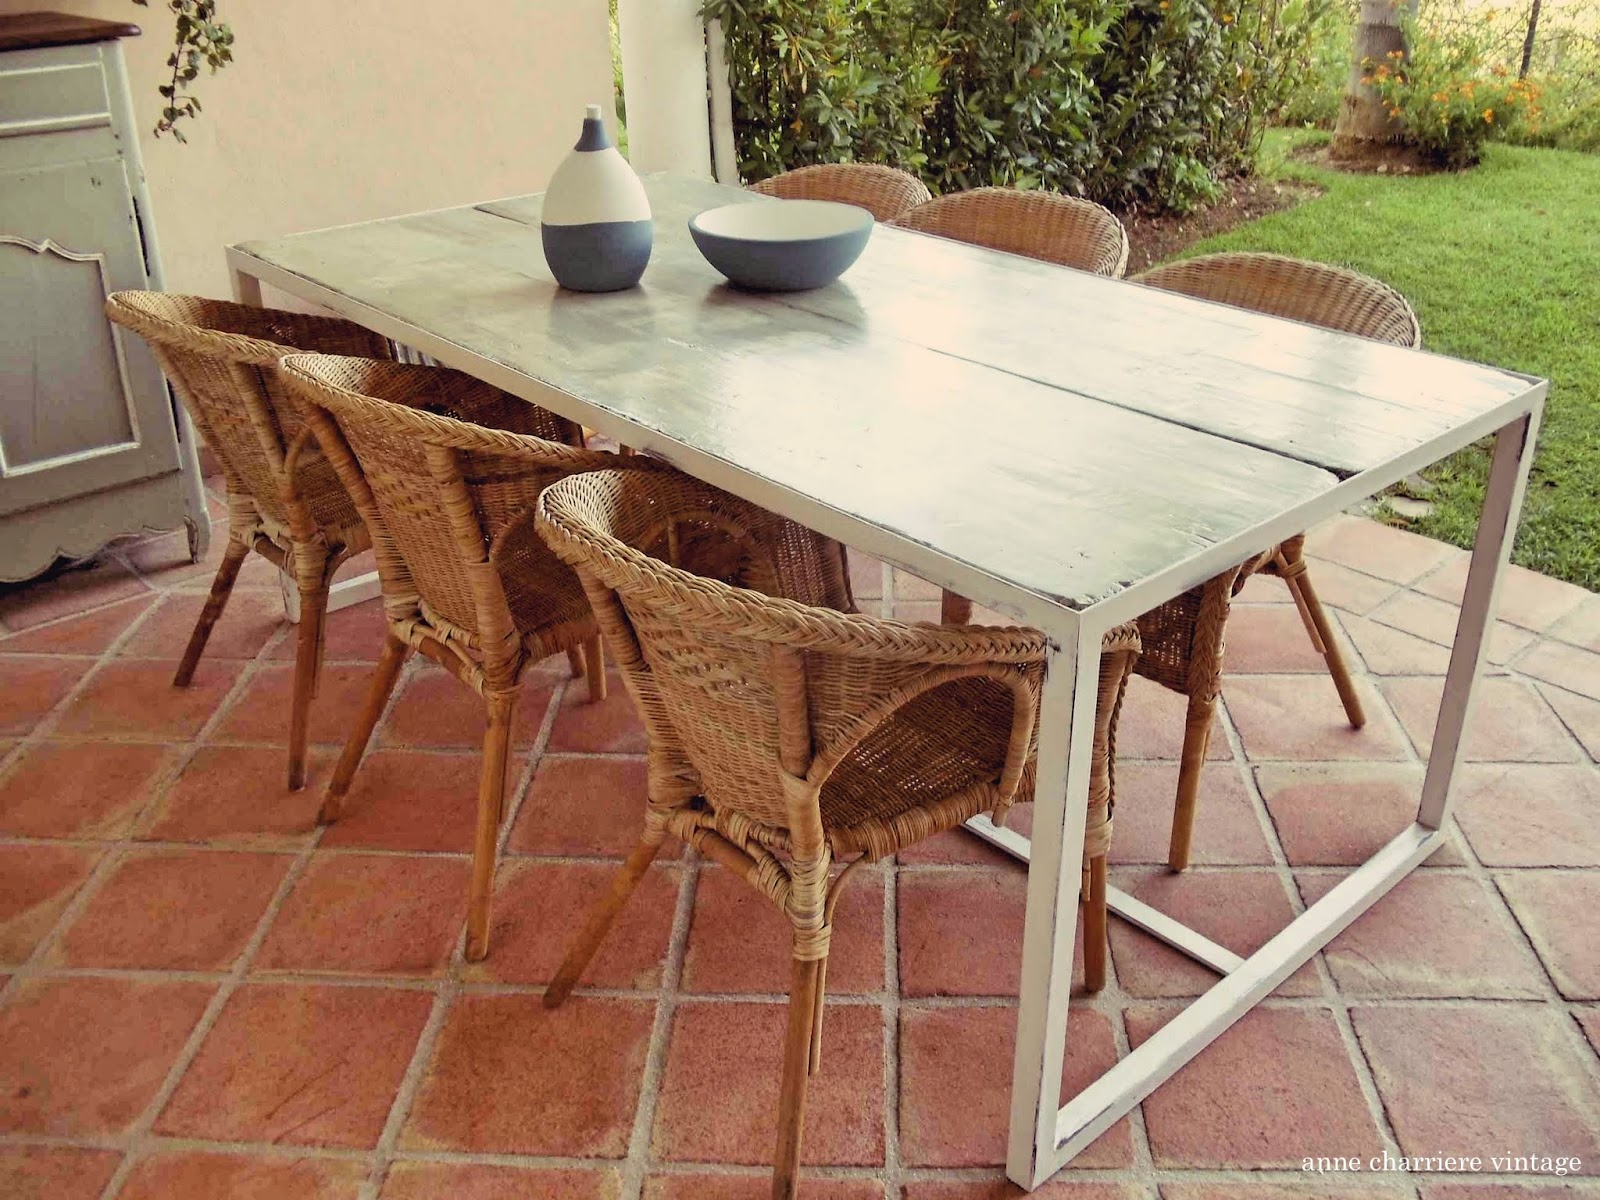 anne charriere vintage, mesa tableros encofrados,